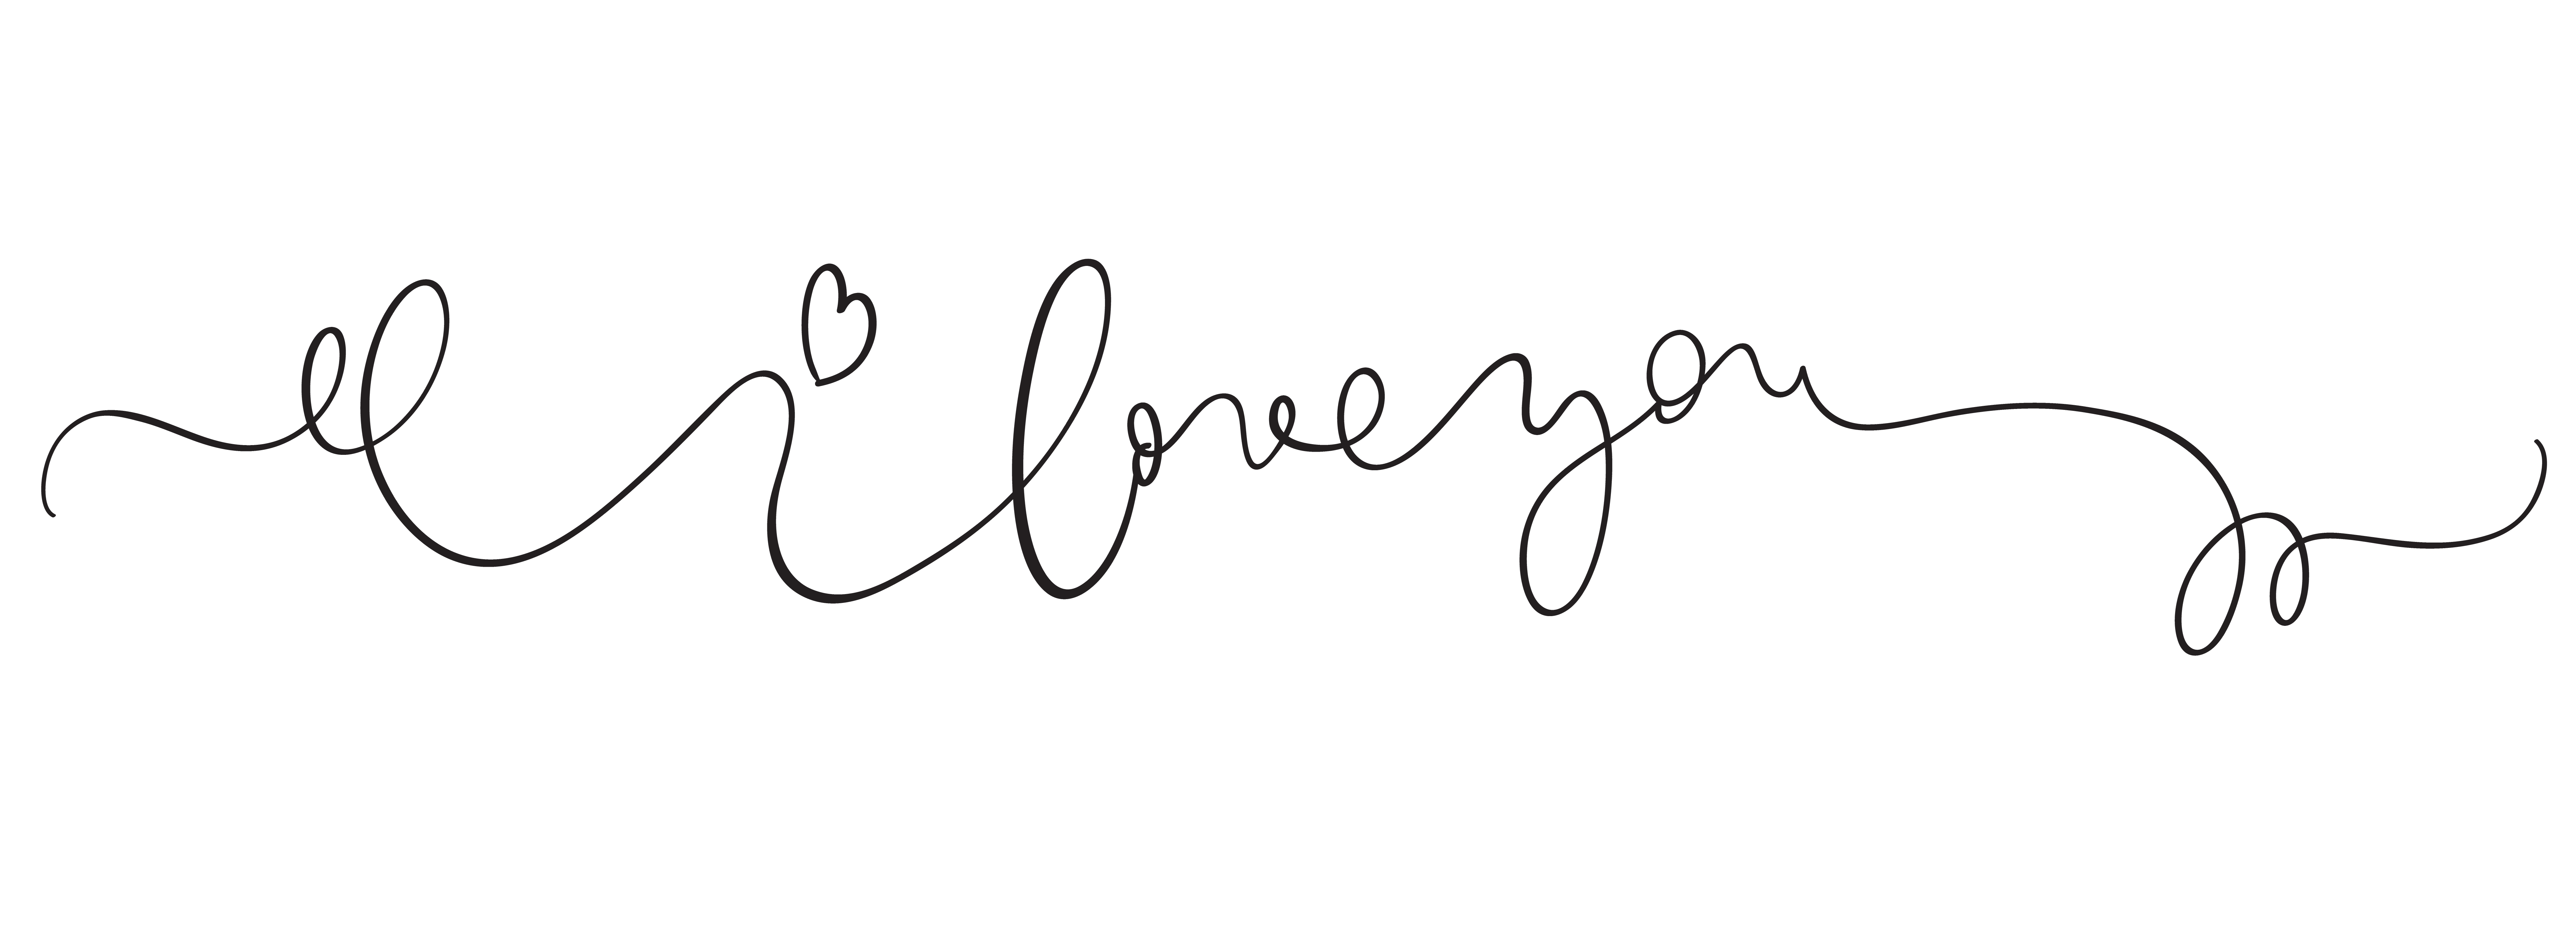 I love you vector vintage text on white background ...  Love Calligraphy Font